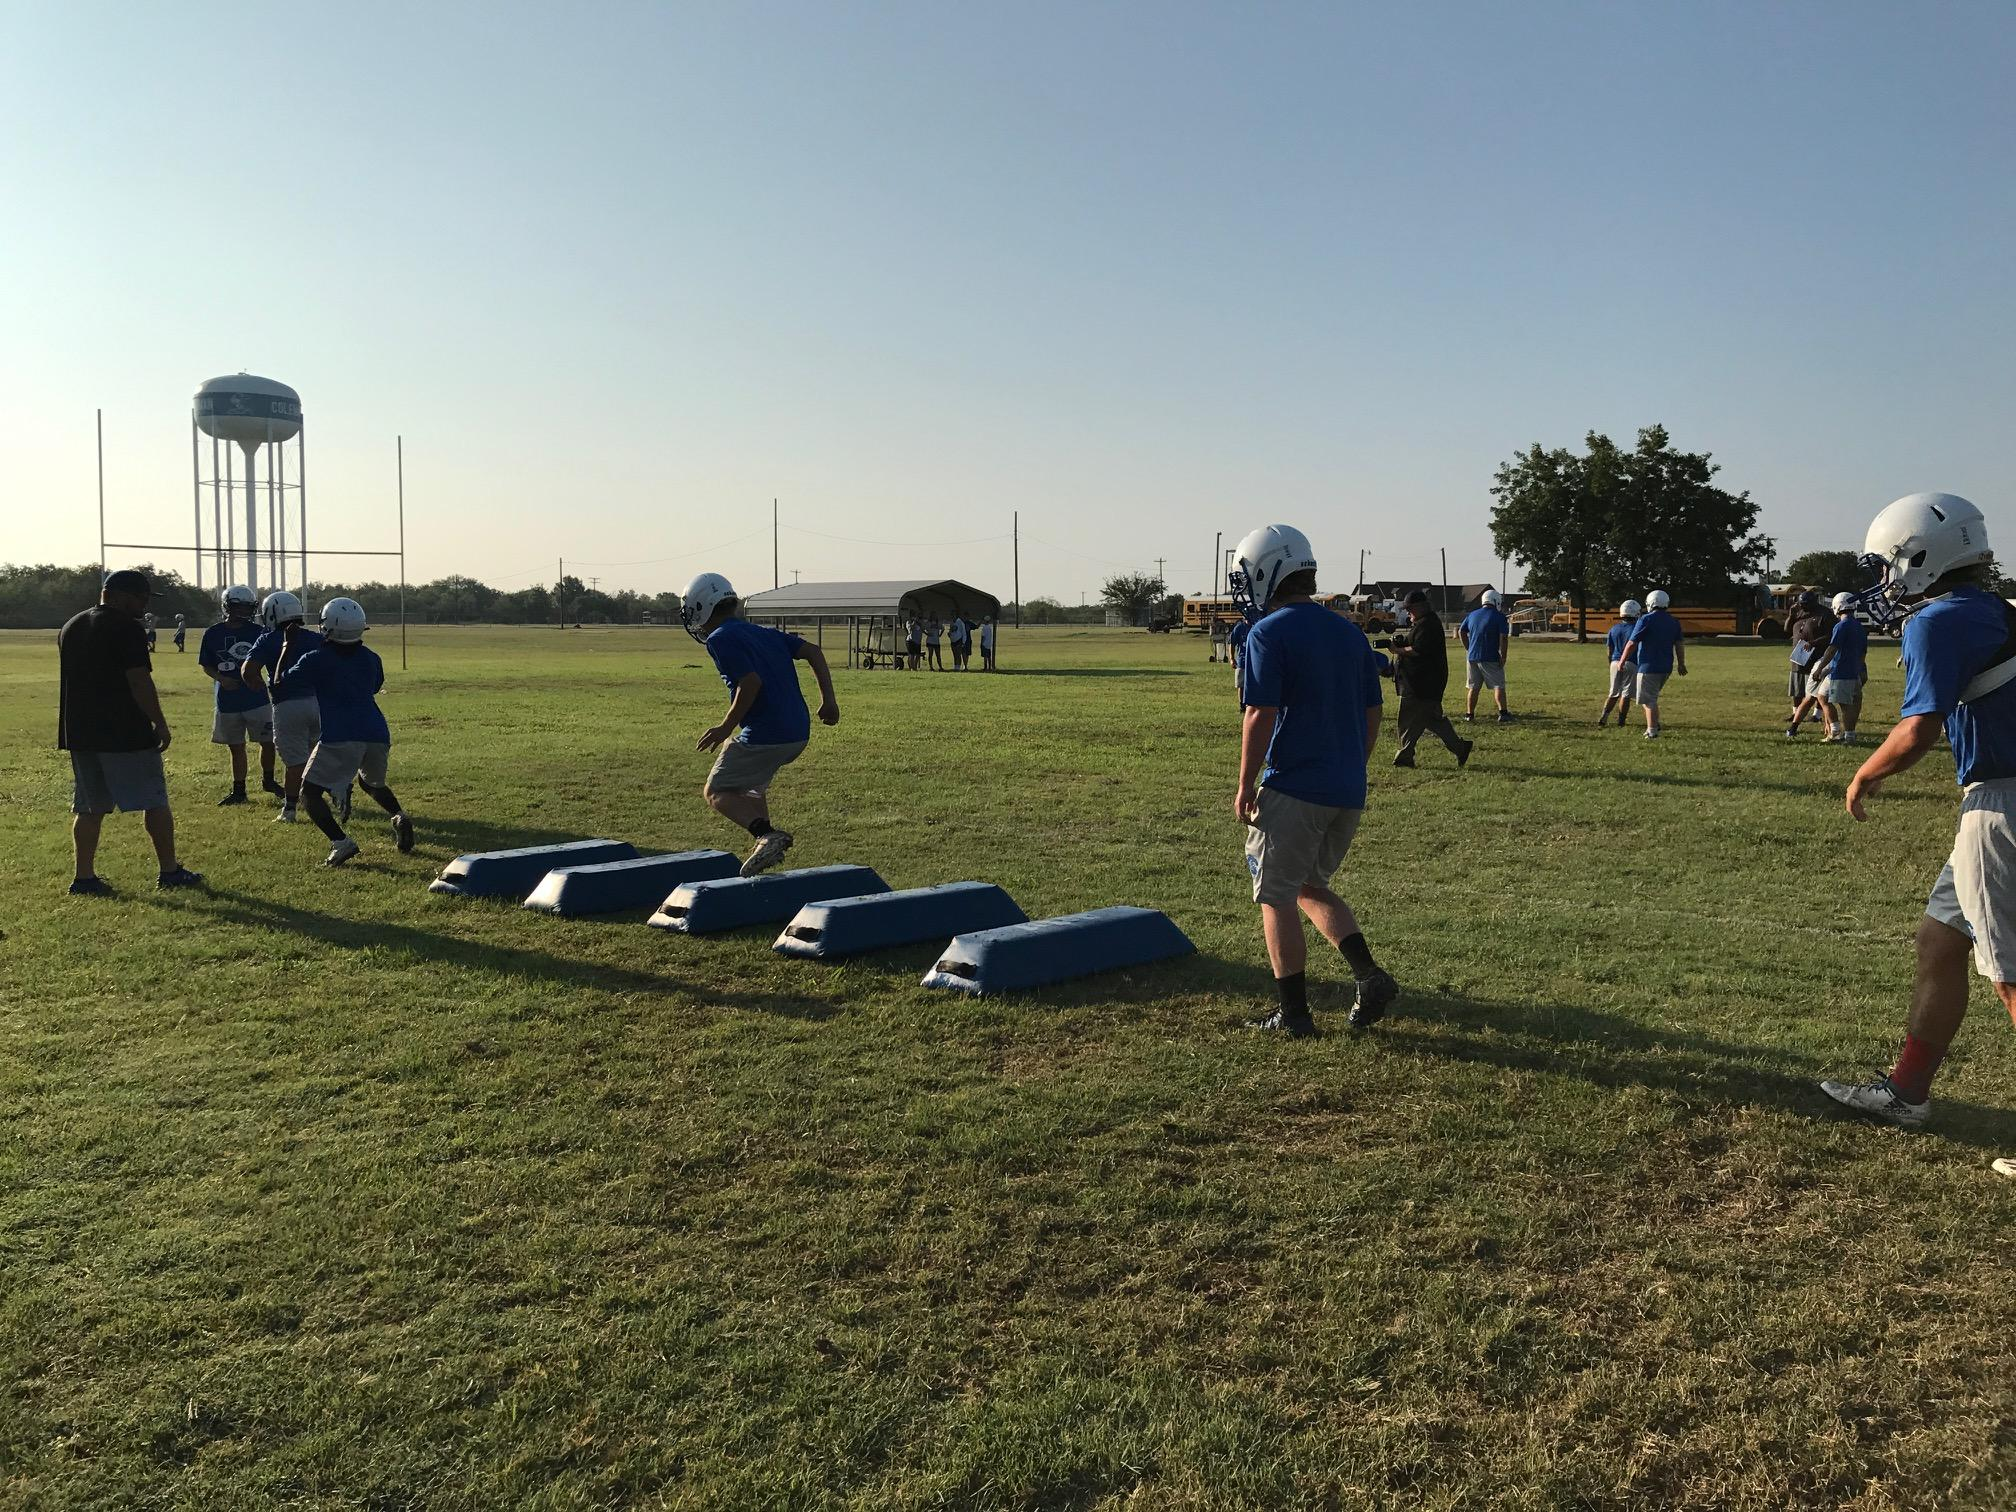 DAY 3: High school football practice -- Coleman High School (Photos by Chris Wilner& Evan Nemec)